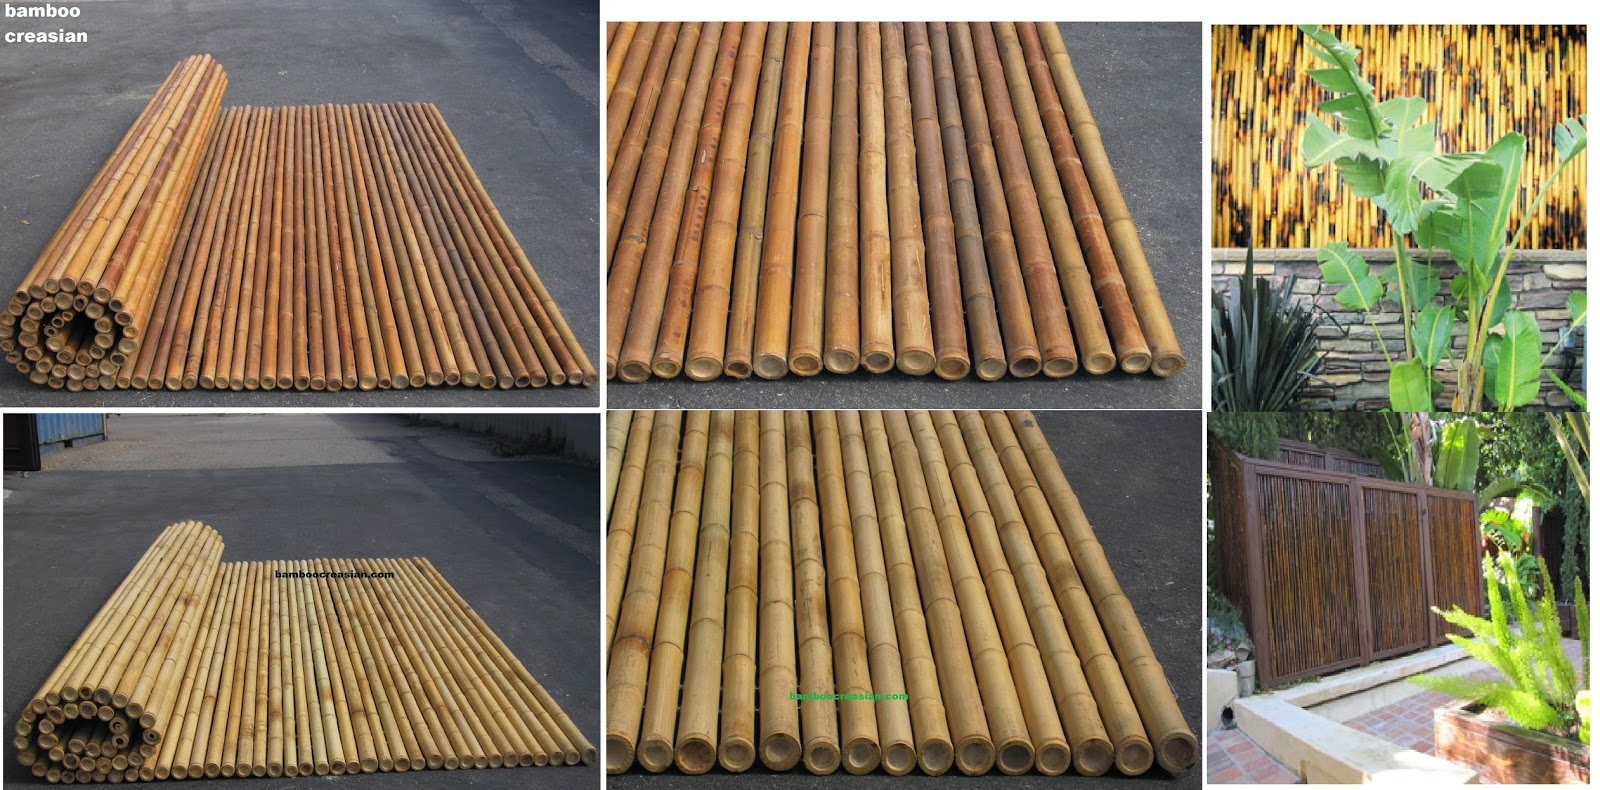 Garden decorations for sale -  1 Inch Bamboo Fencing Santa Monica Special Sale Pricing All Of Bamboo Fencing Bamboo Wainscooting Bamboo Paneling Bamboo Weave Matting Bamboo Rolls